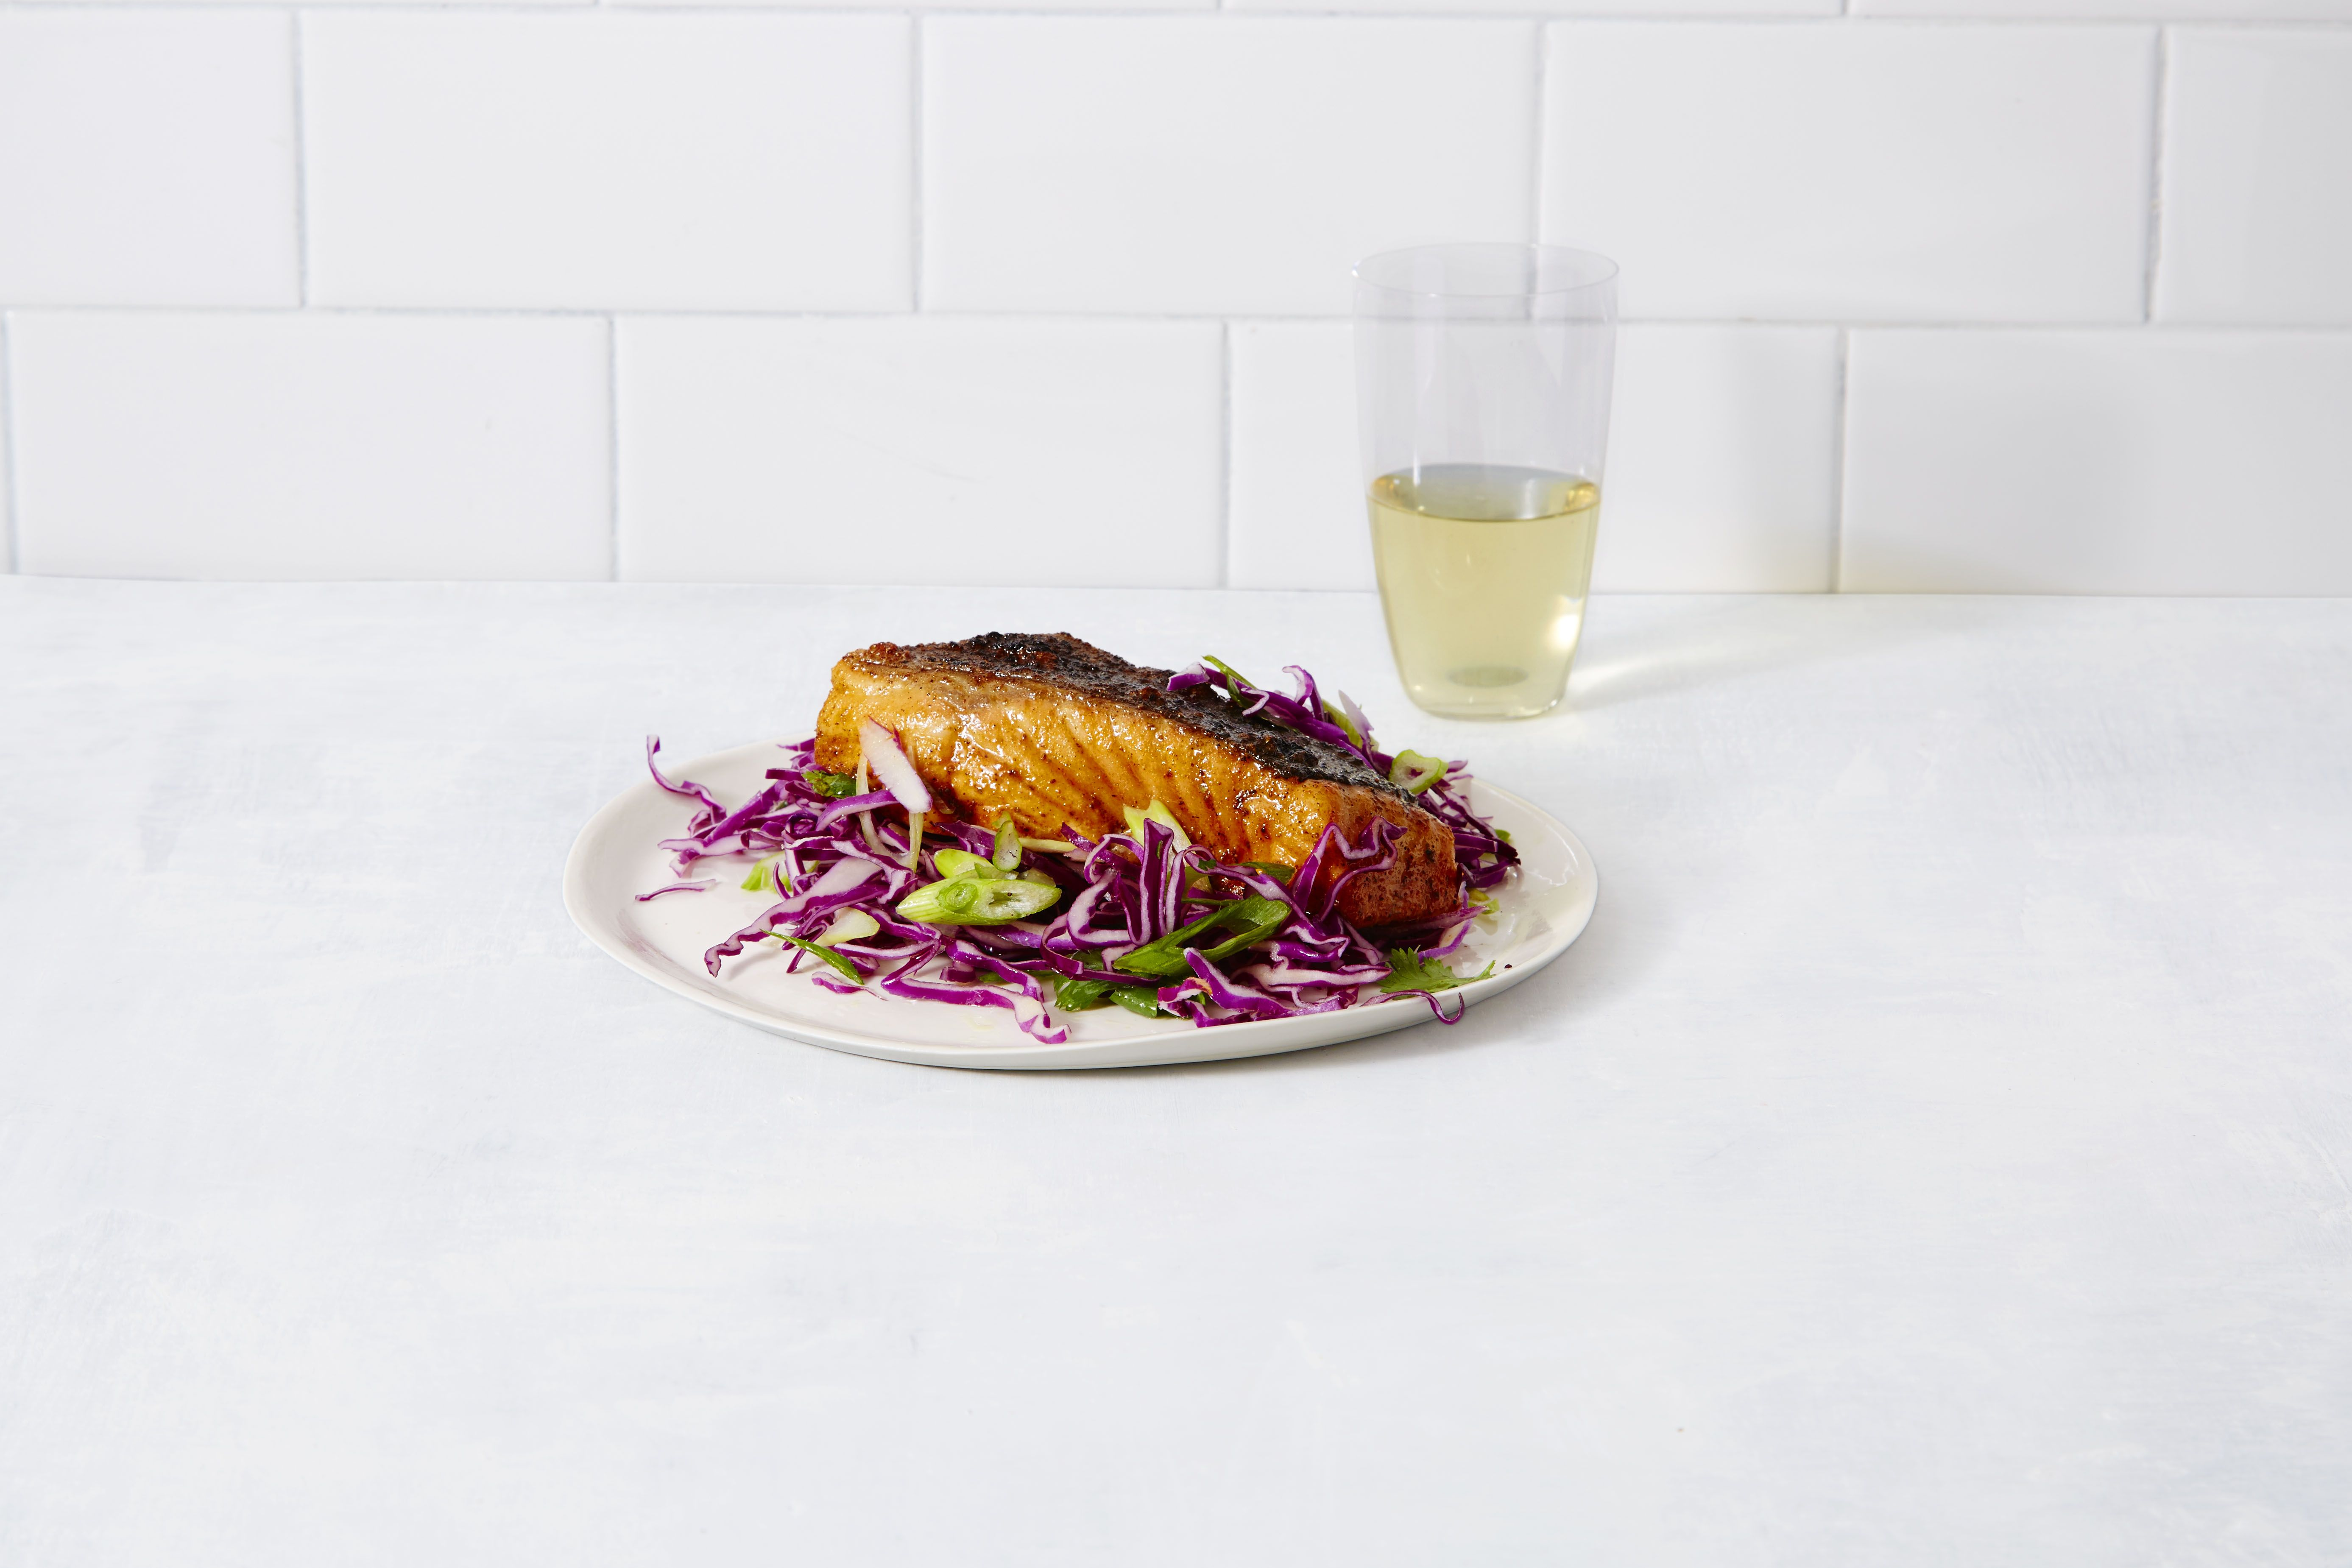 30 Healthy Fish And Seafood Recipes Dinner Ideas Mothers Corn Enjoy Fishing Twin Bowl